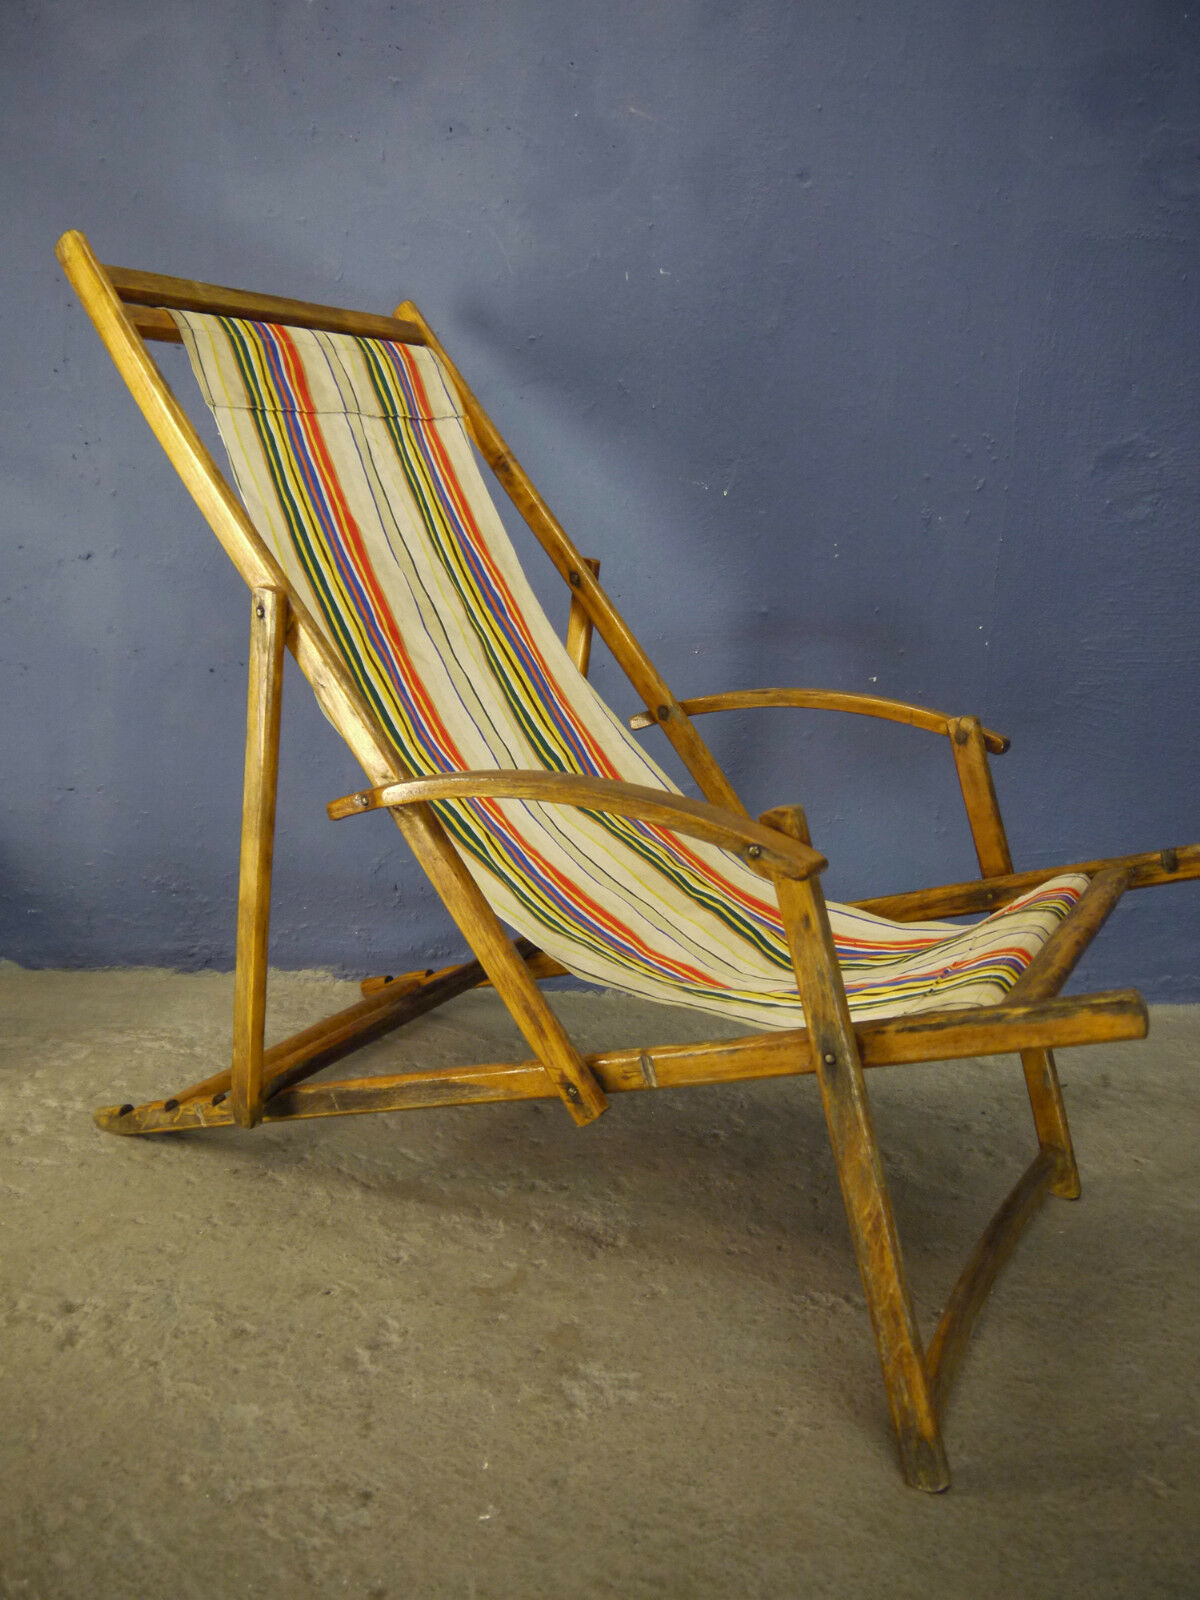 VINTAGE ANTIQUE ART DECO MID CENTURY 1930s 1940s 1950s FOLDING DECK CHAIR PATIO